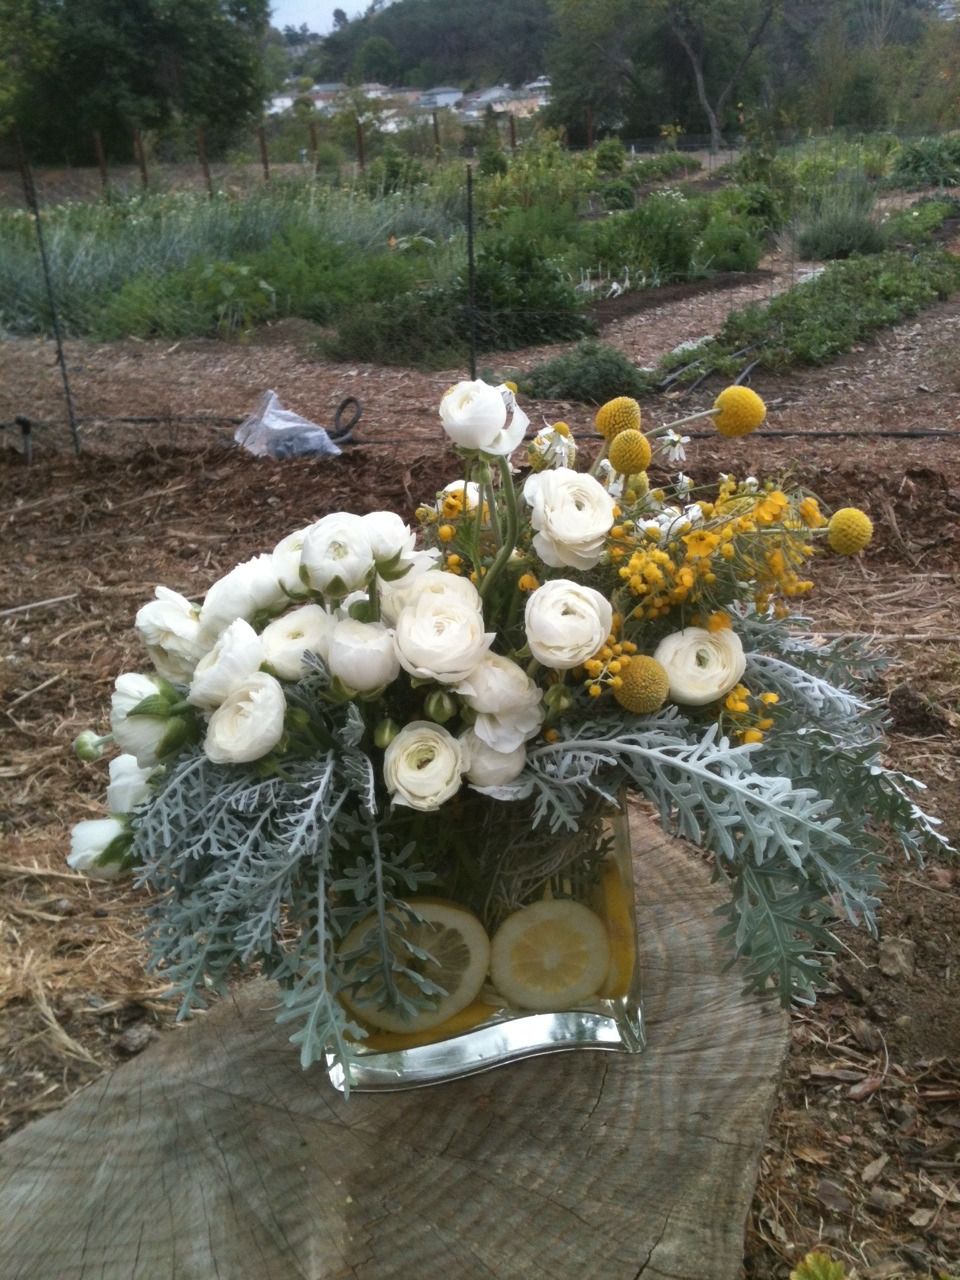 A flower arrangement I made from Silver Lake Farms, an urban flower farm with a kindred devotion to sustainability.